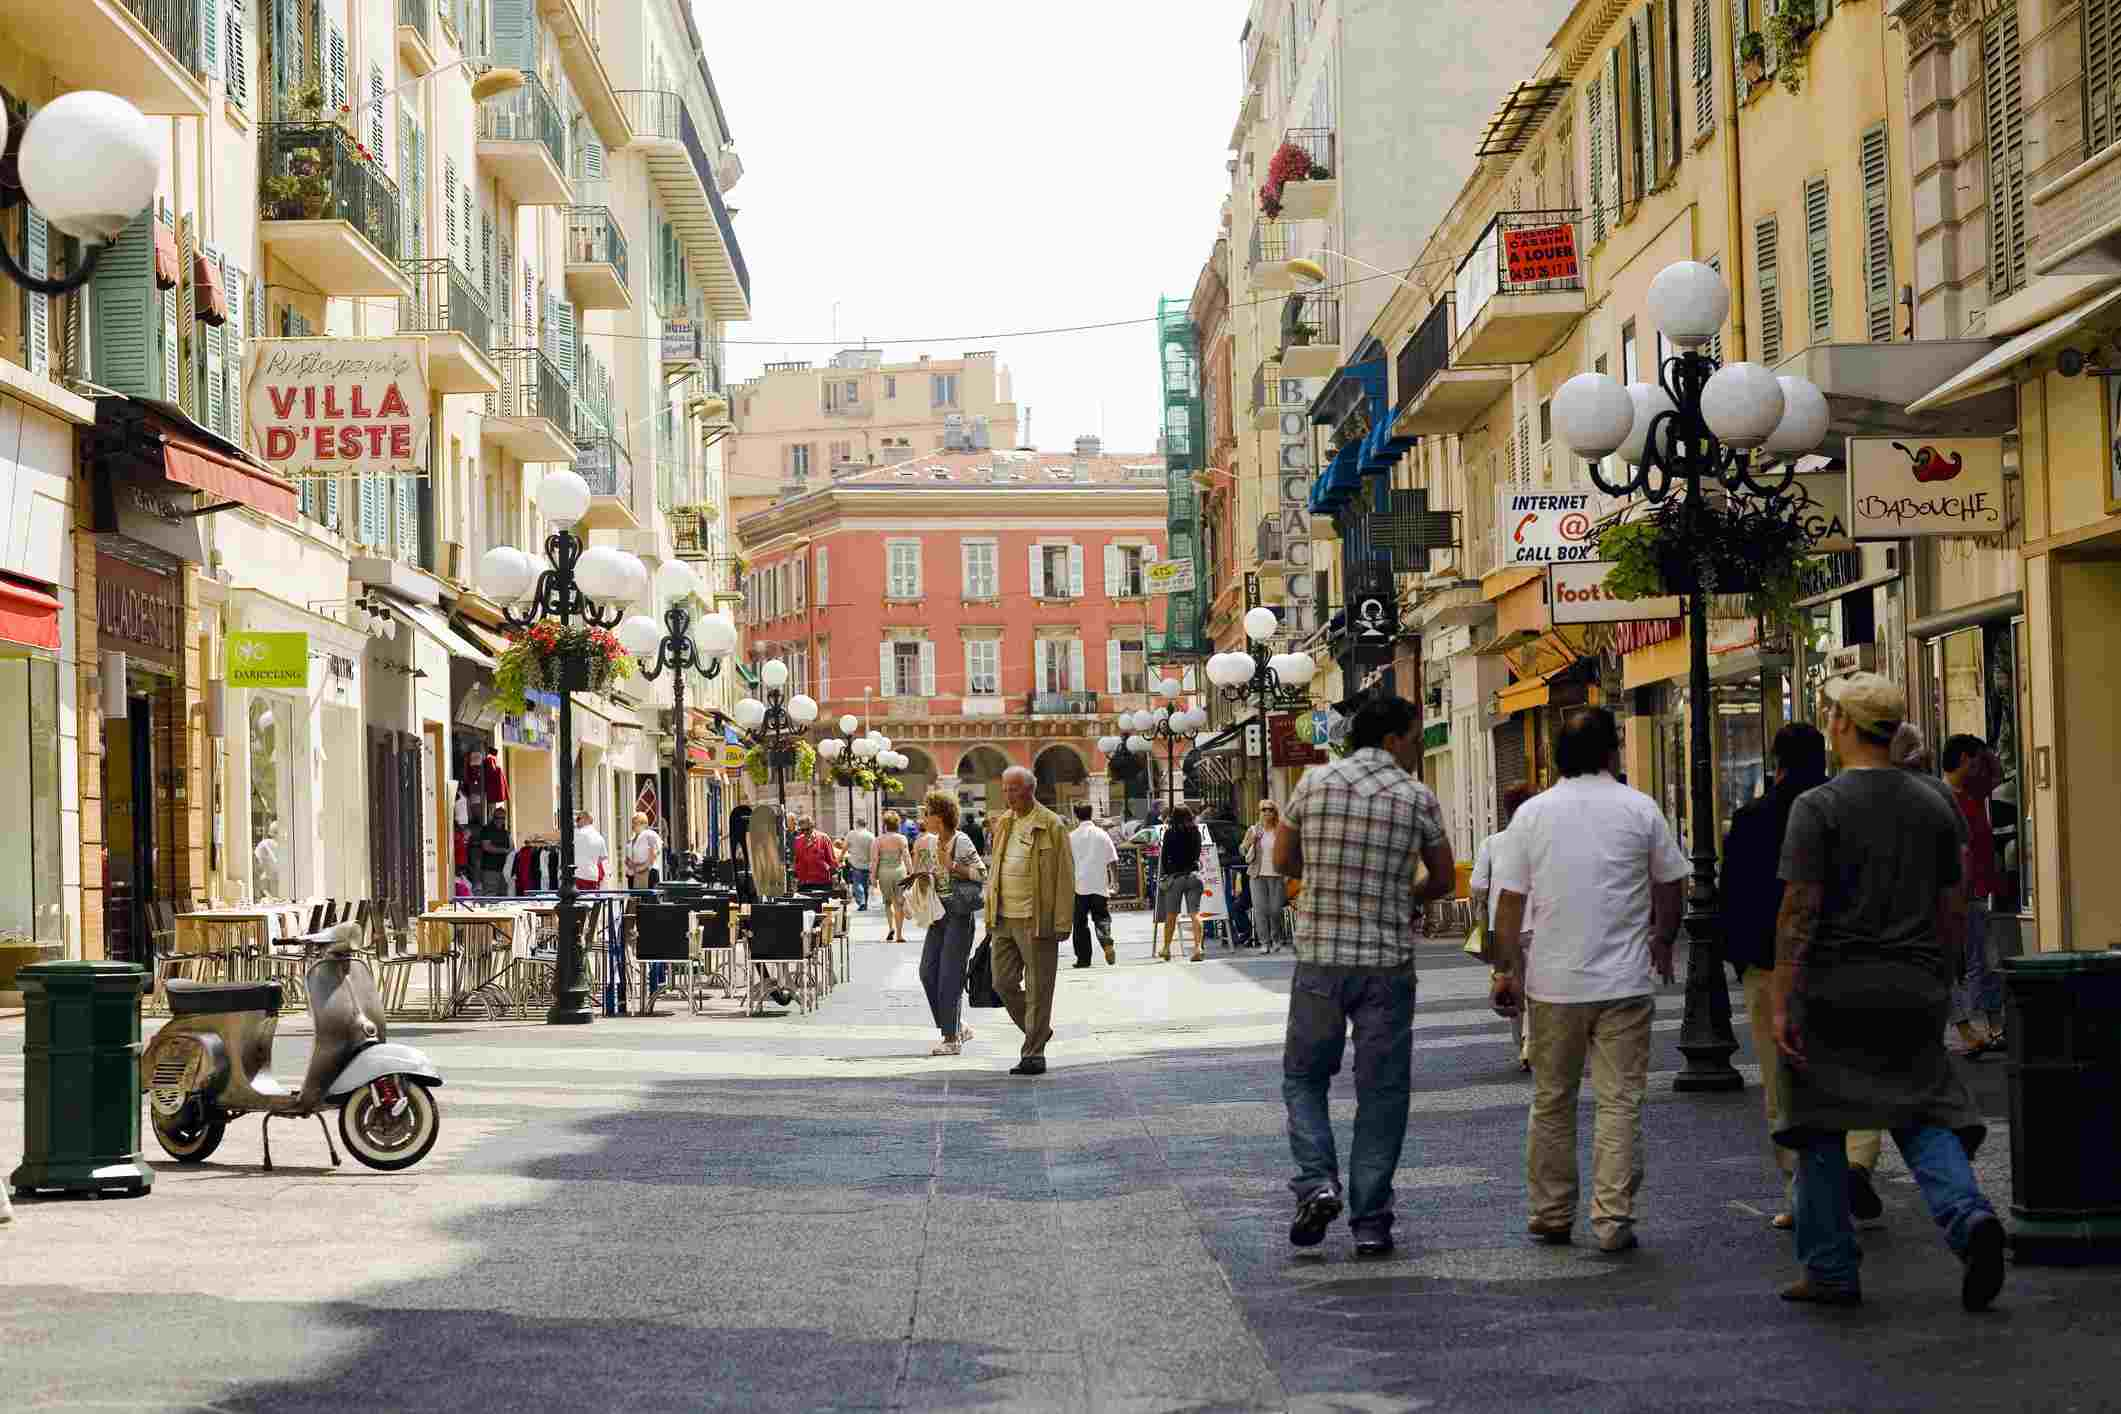 Group of people walking in a market, Nice, France